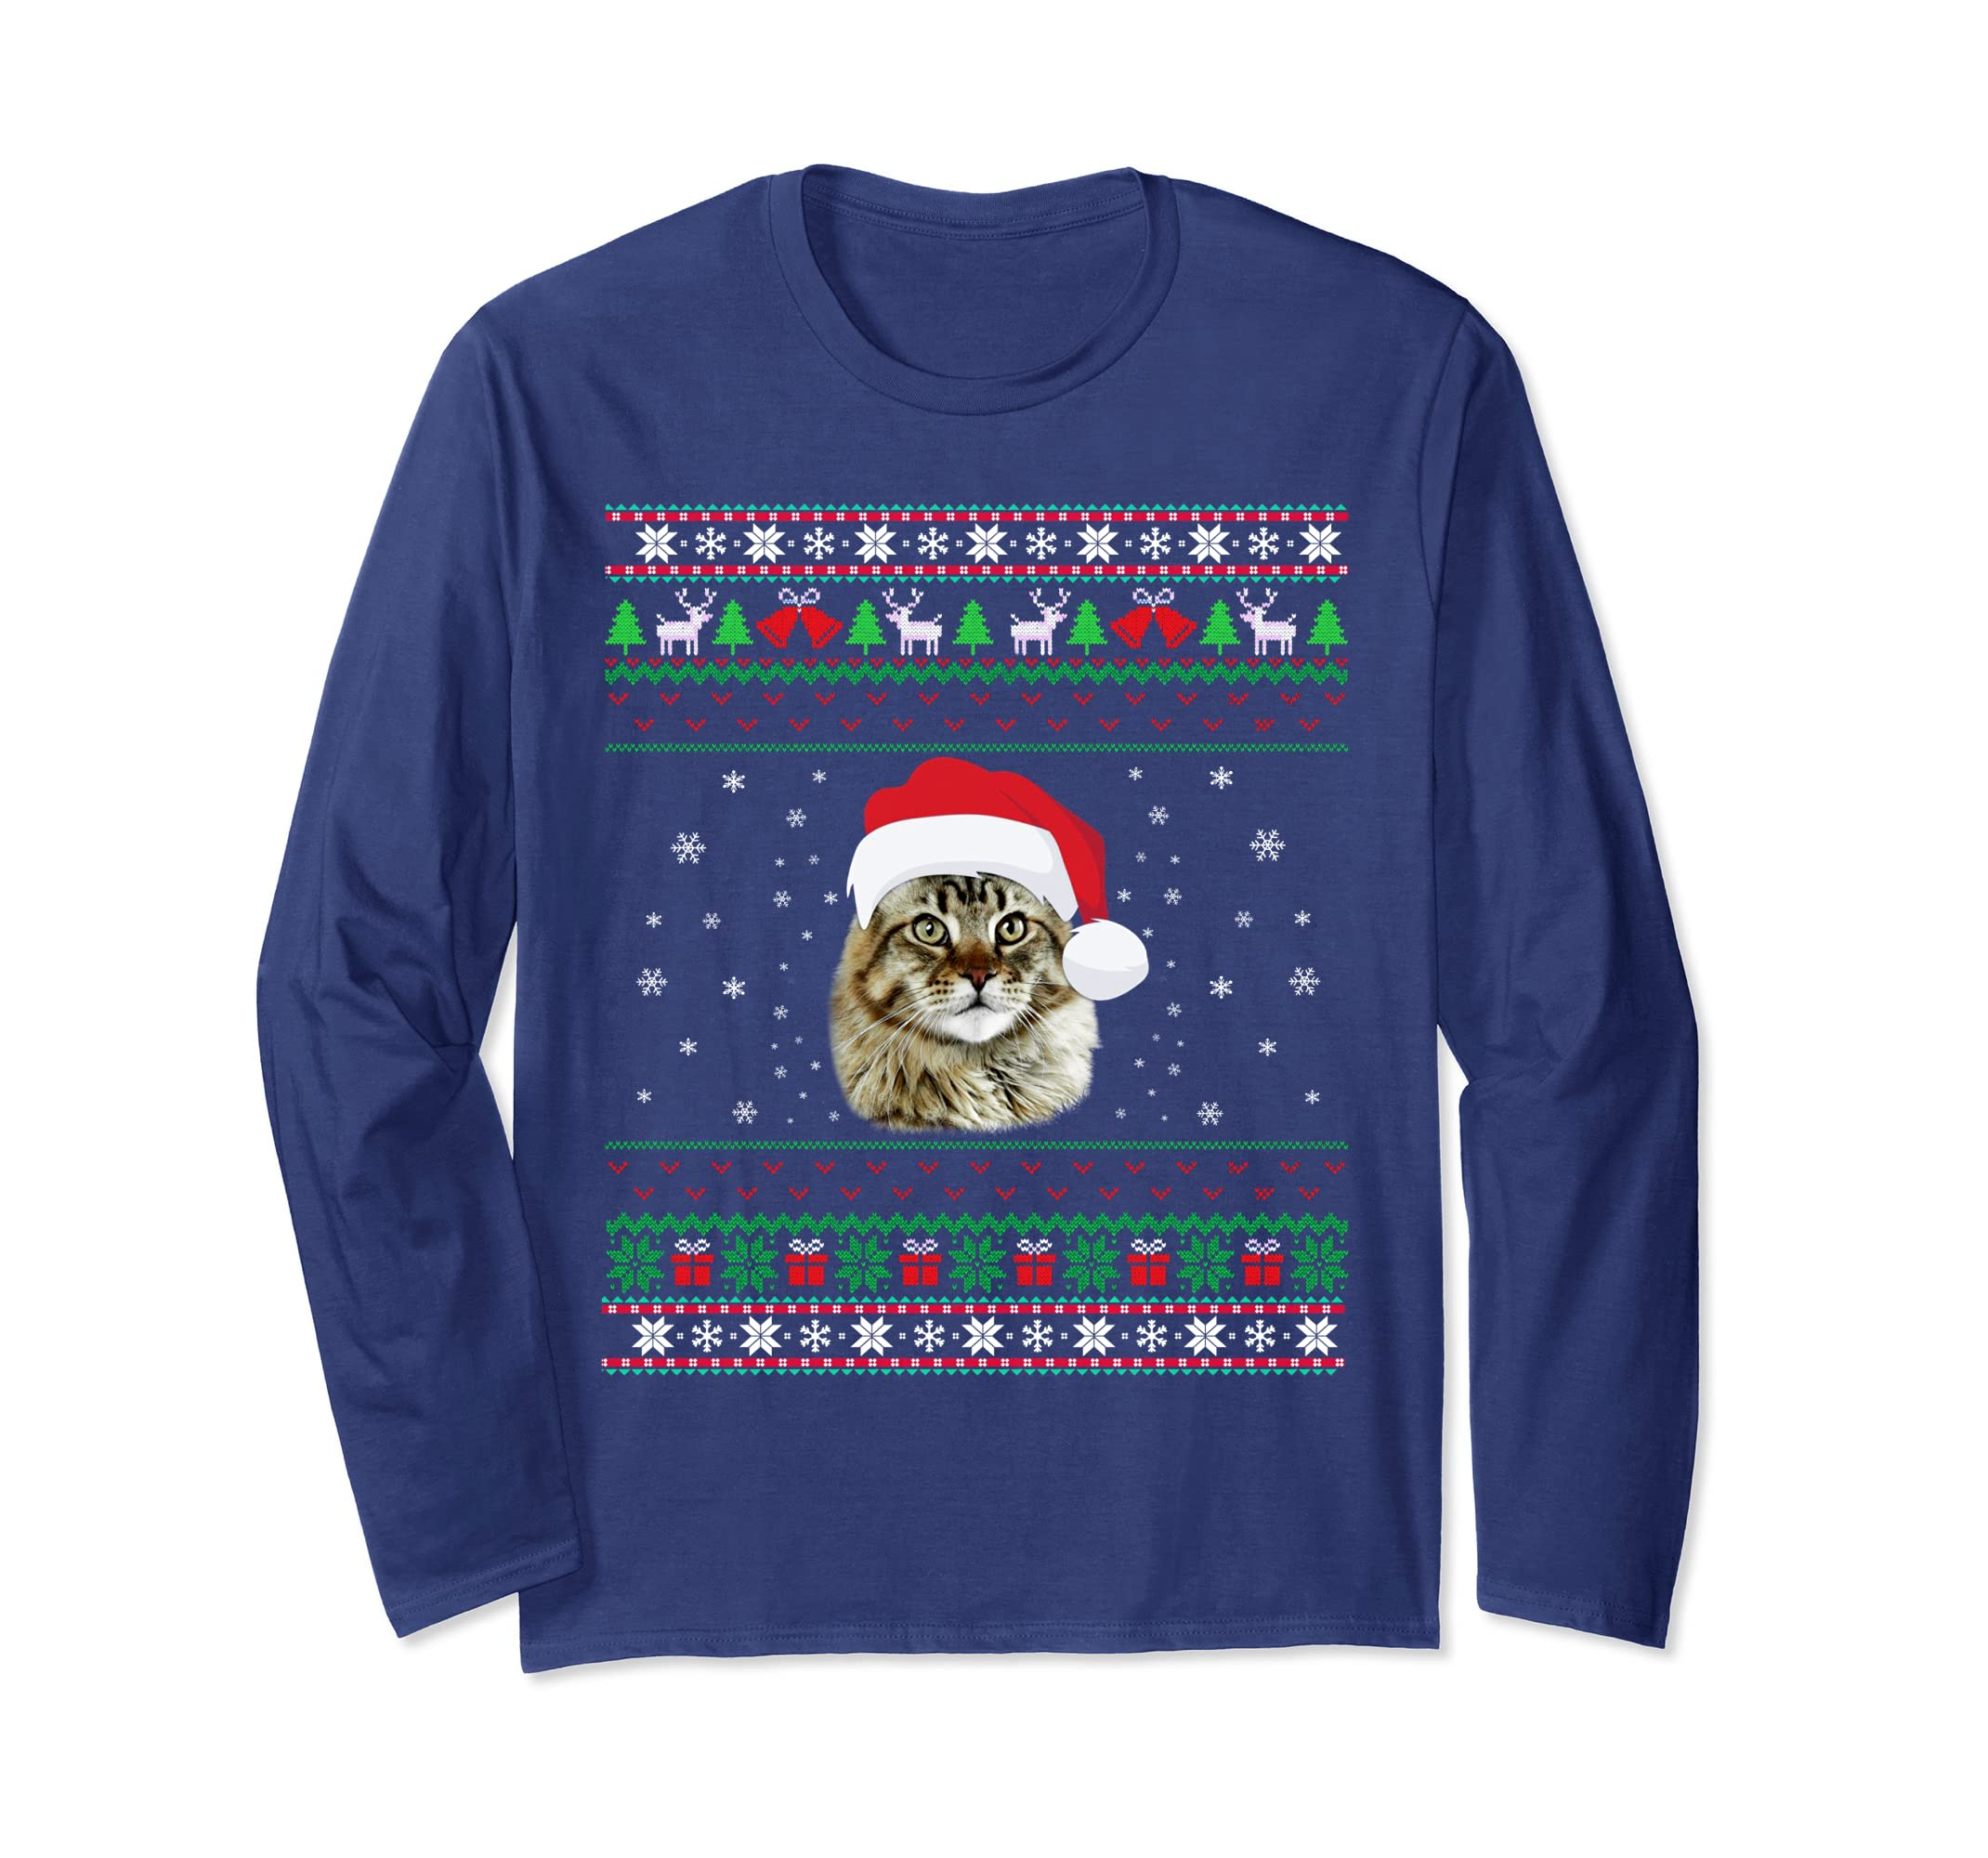 Meowy Christmas Sweater.Maine Coon Meowy Christmas Ugly Sweater Cat Gift Long Sleeve Sfl